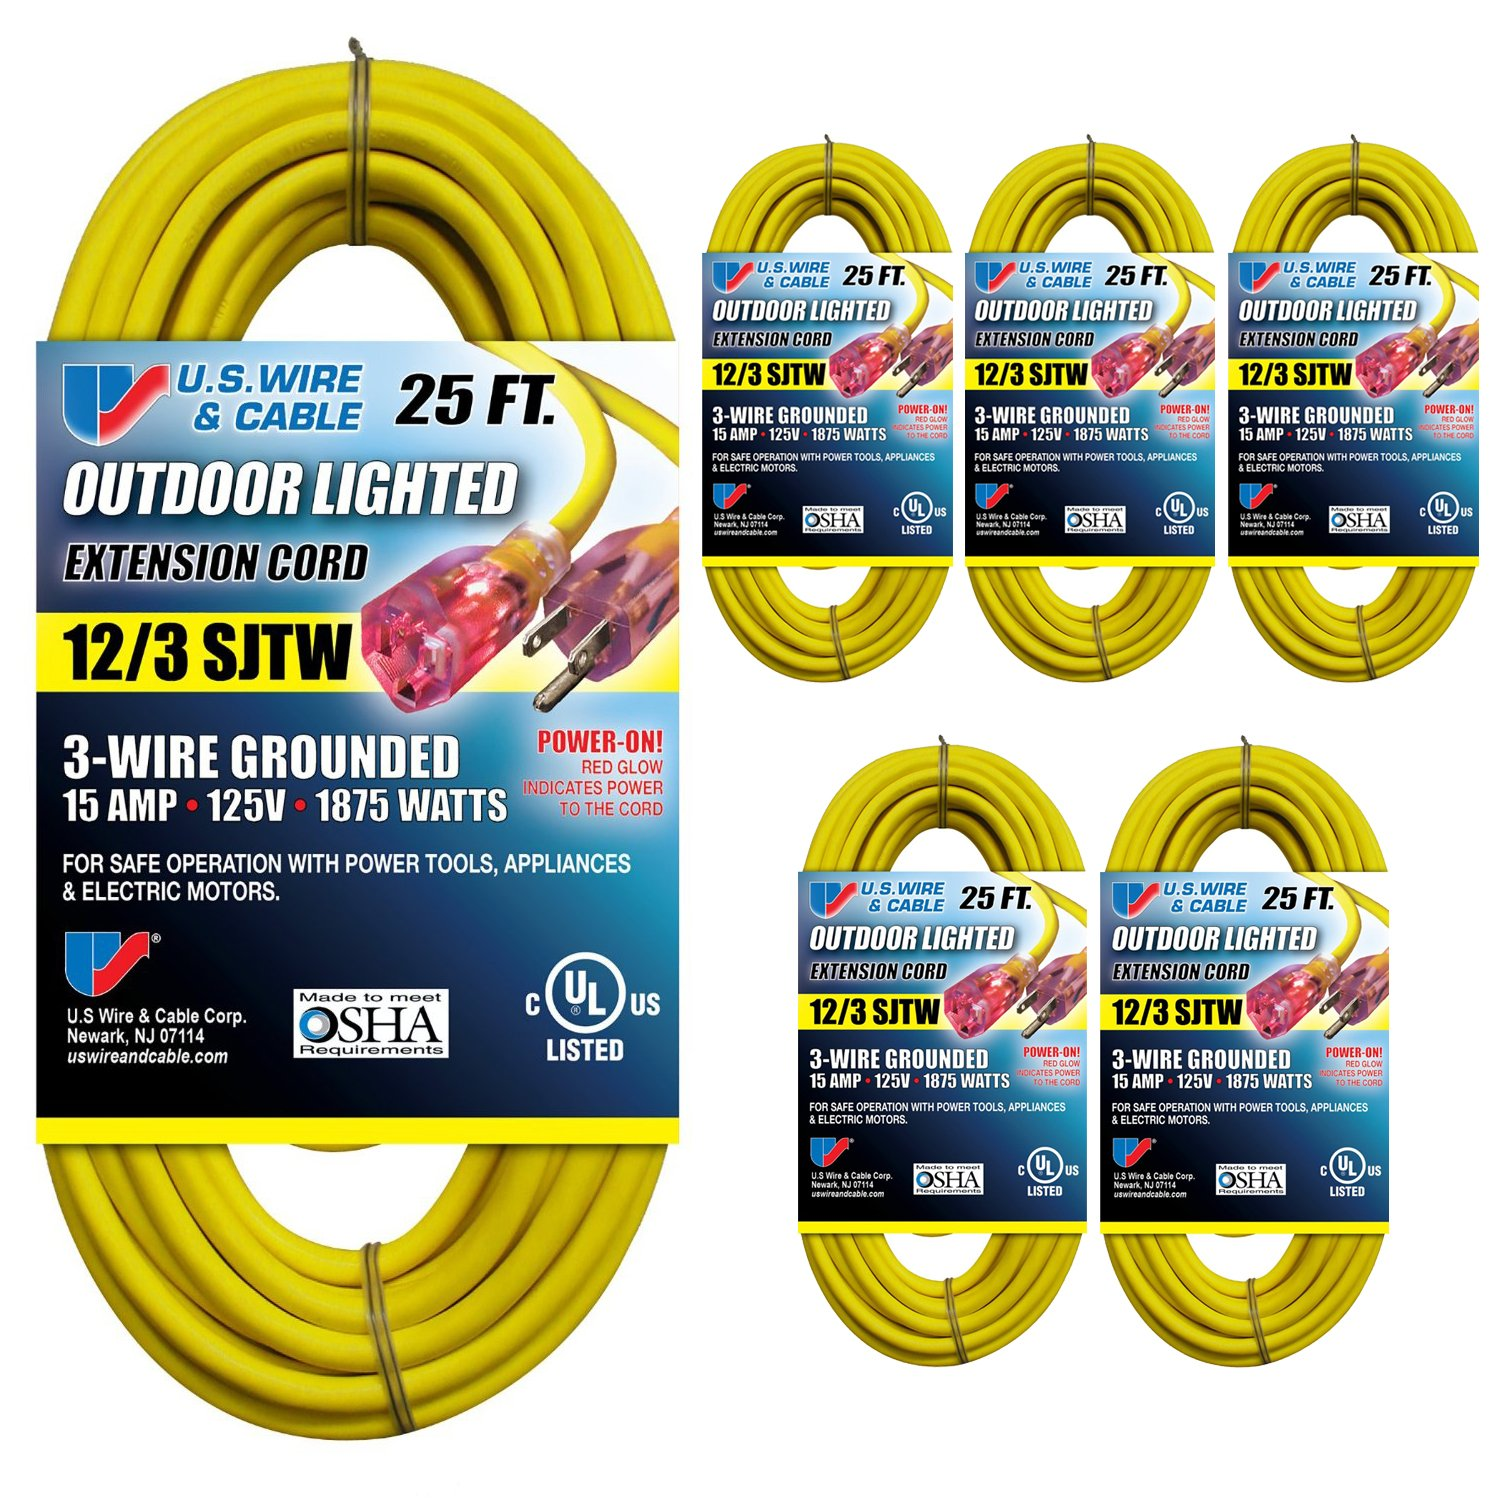 US Wire 25-FT 12//3 SJTW Heavy Duty Extension Cord US Wire and Cable COMINHKPR94757 Yellow//Lighted Plug, 2-Pk